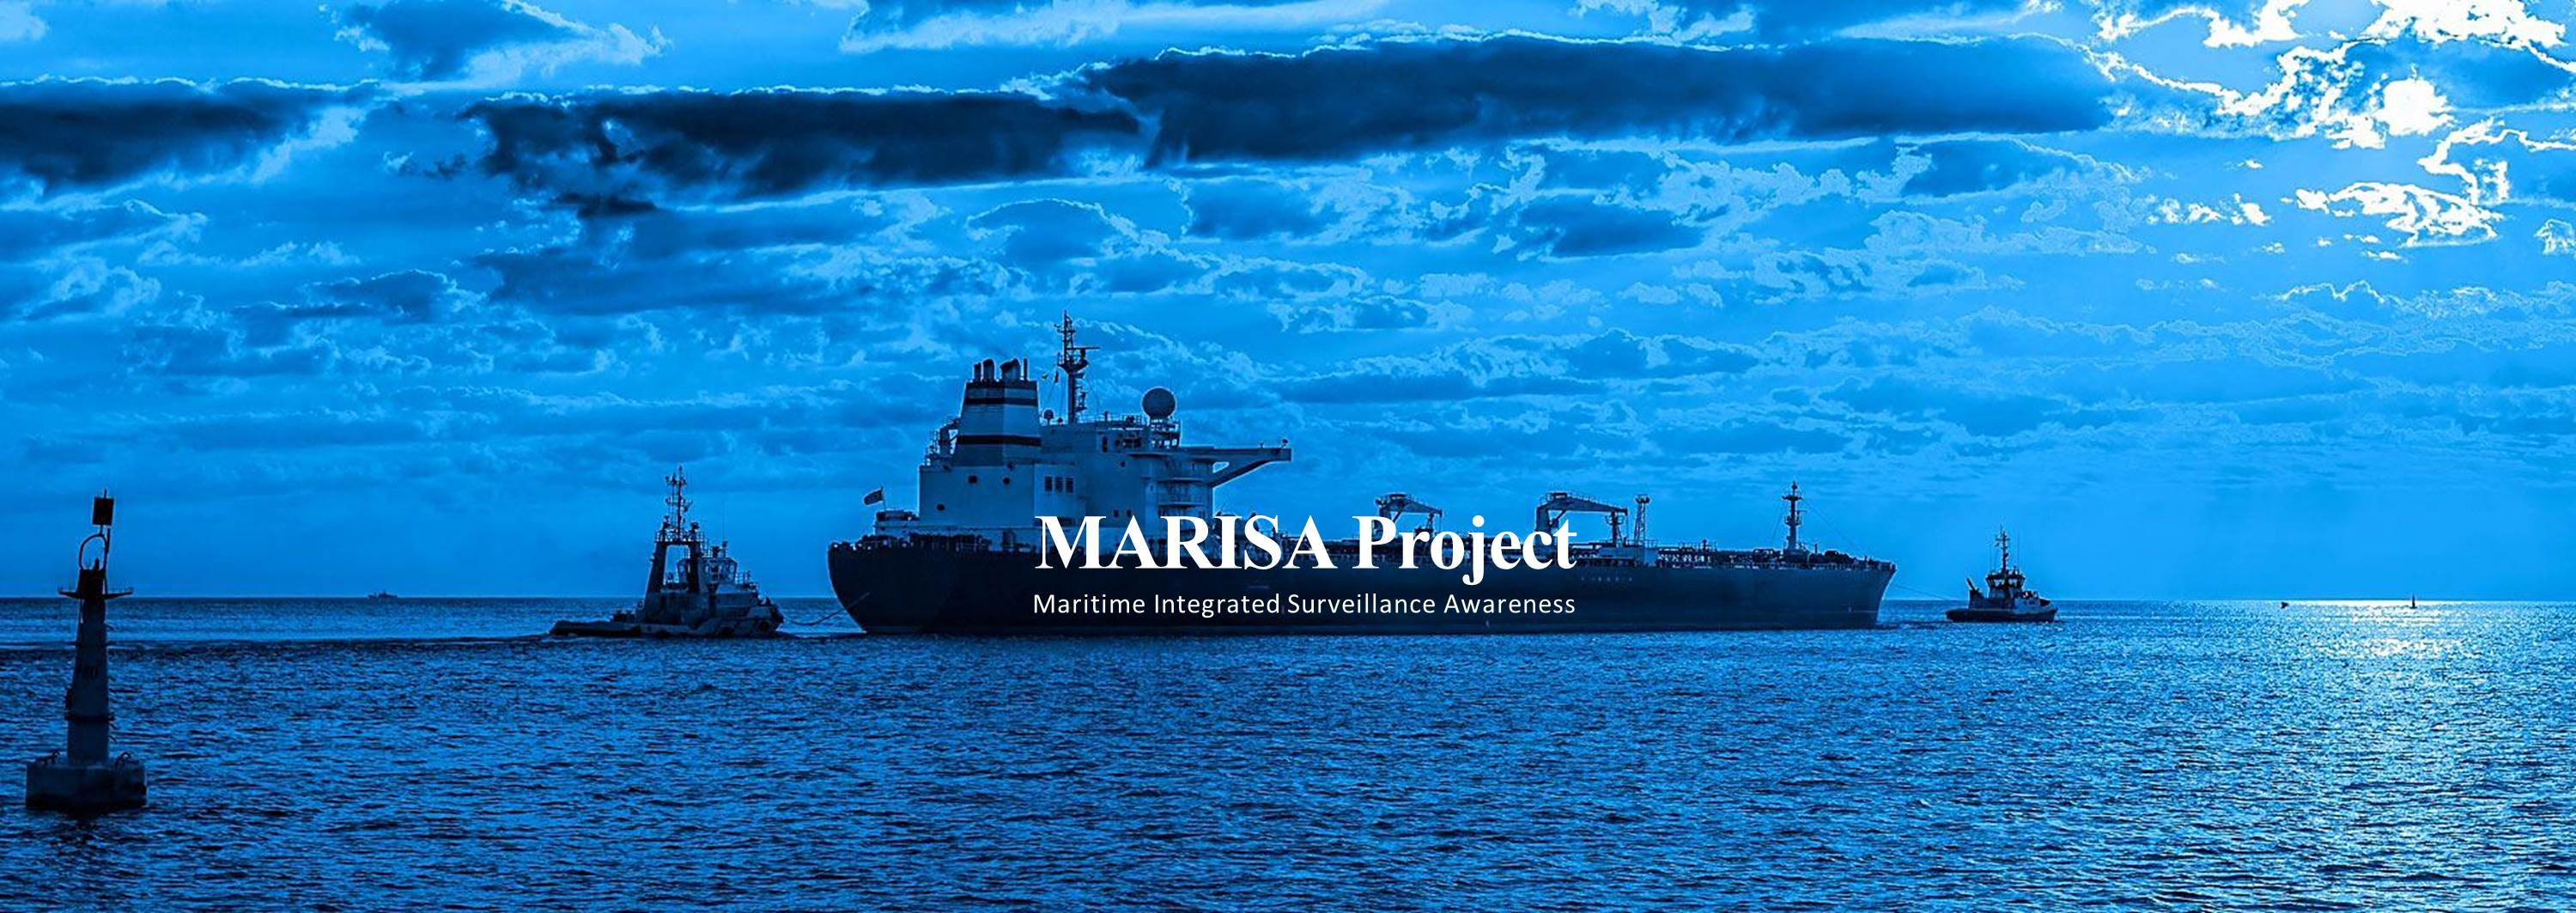 Marisa project - Maritime Integrated Surveillance Awareness